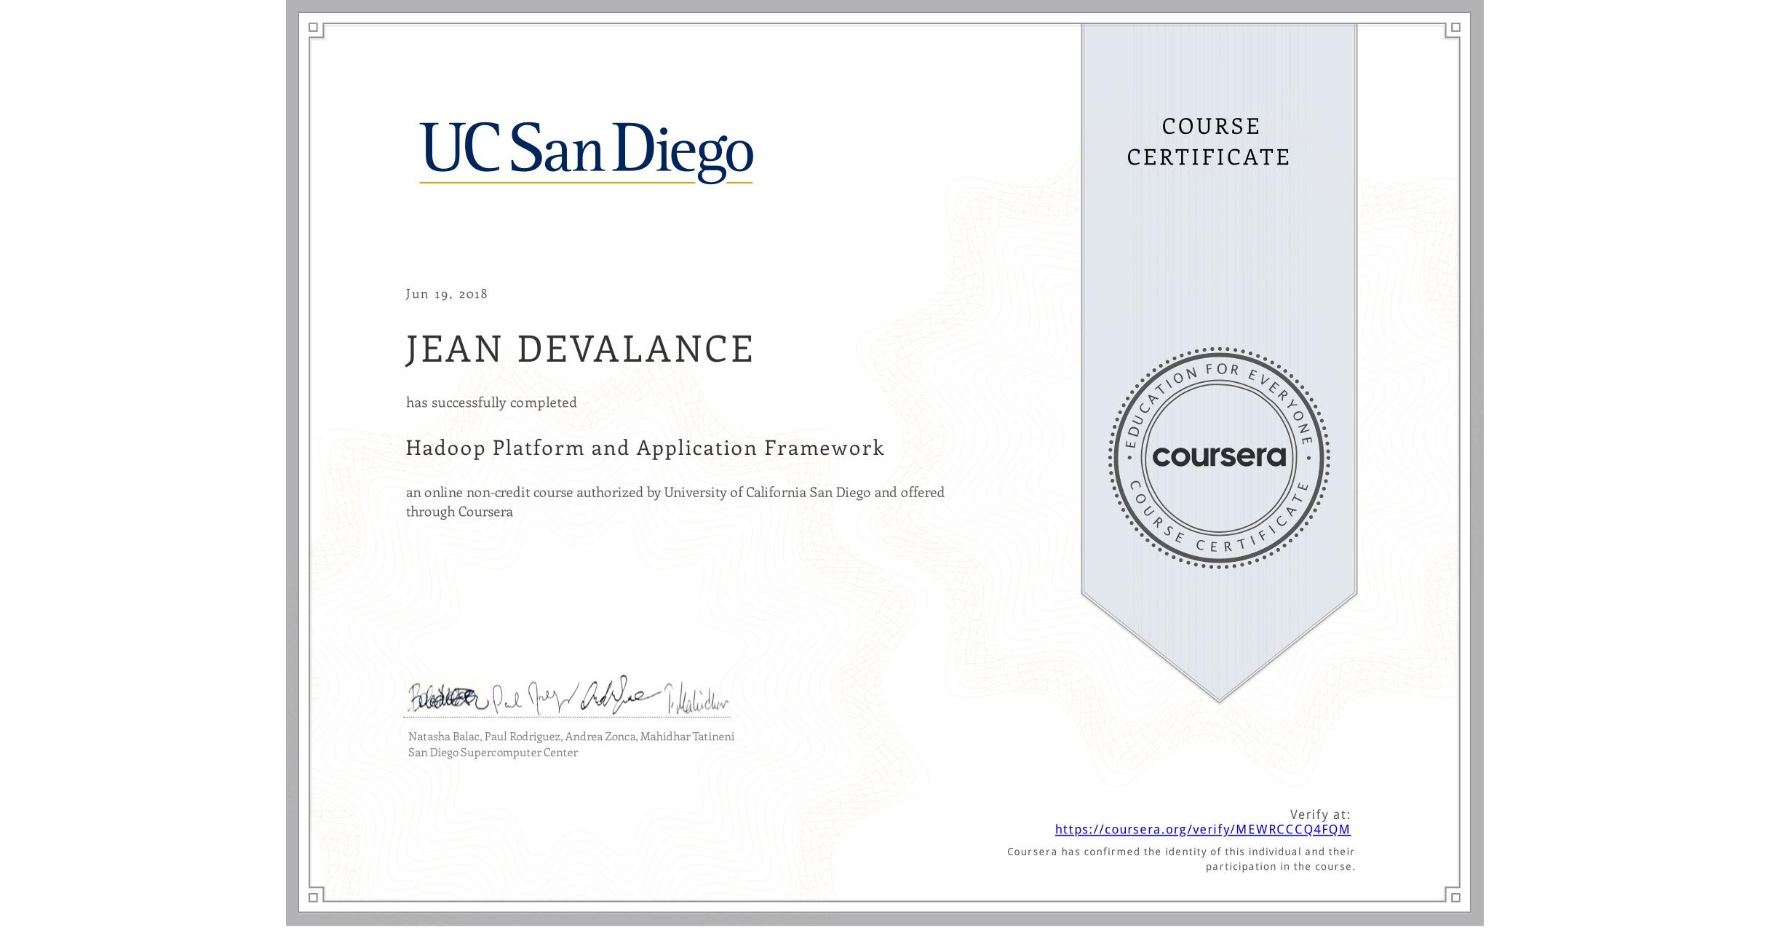 View certificate for JEAN DEVALANCE, Hadoop Platform and Application Framework, an online non-credit course authorized by University of California San Diego and offered through Coursera